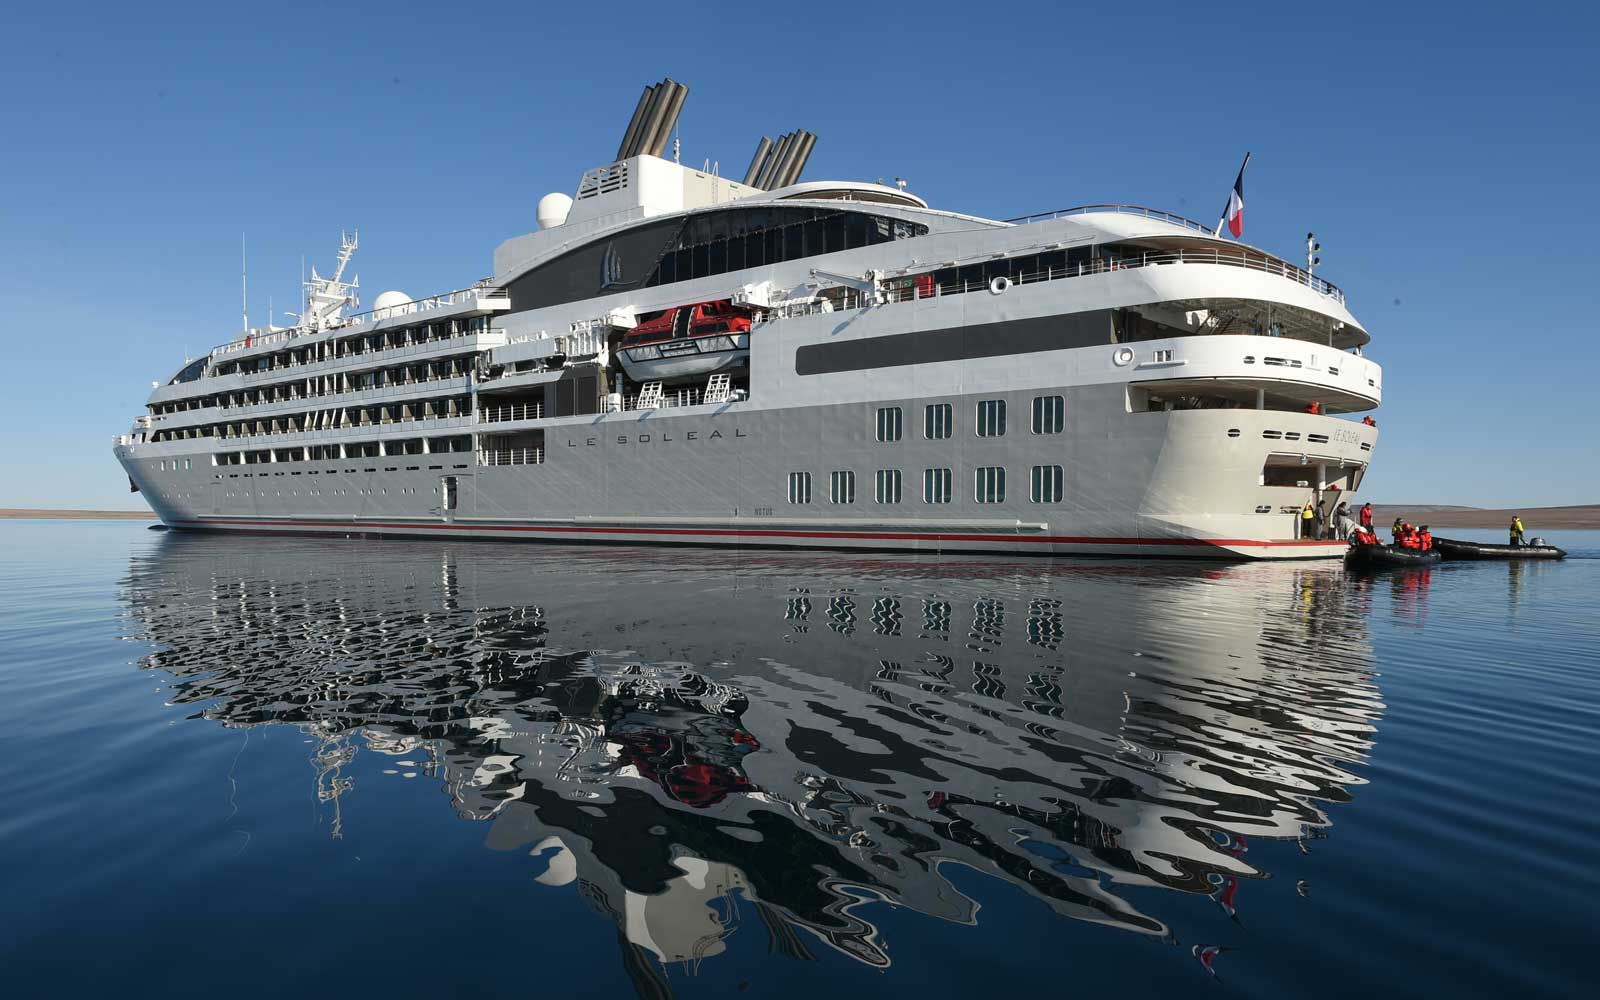 Five Things to Know About Ponant's Le Soléal Cruise Ship